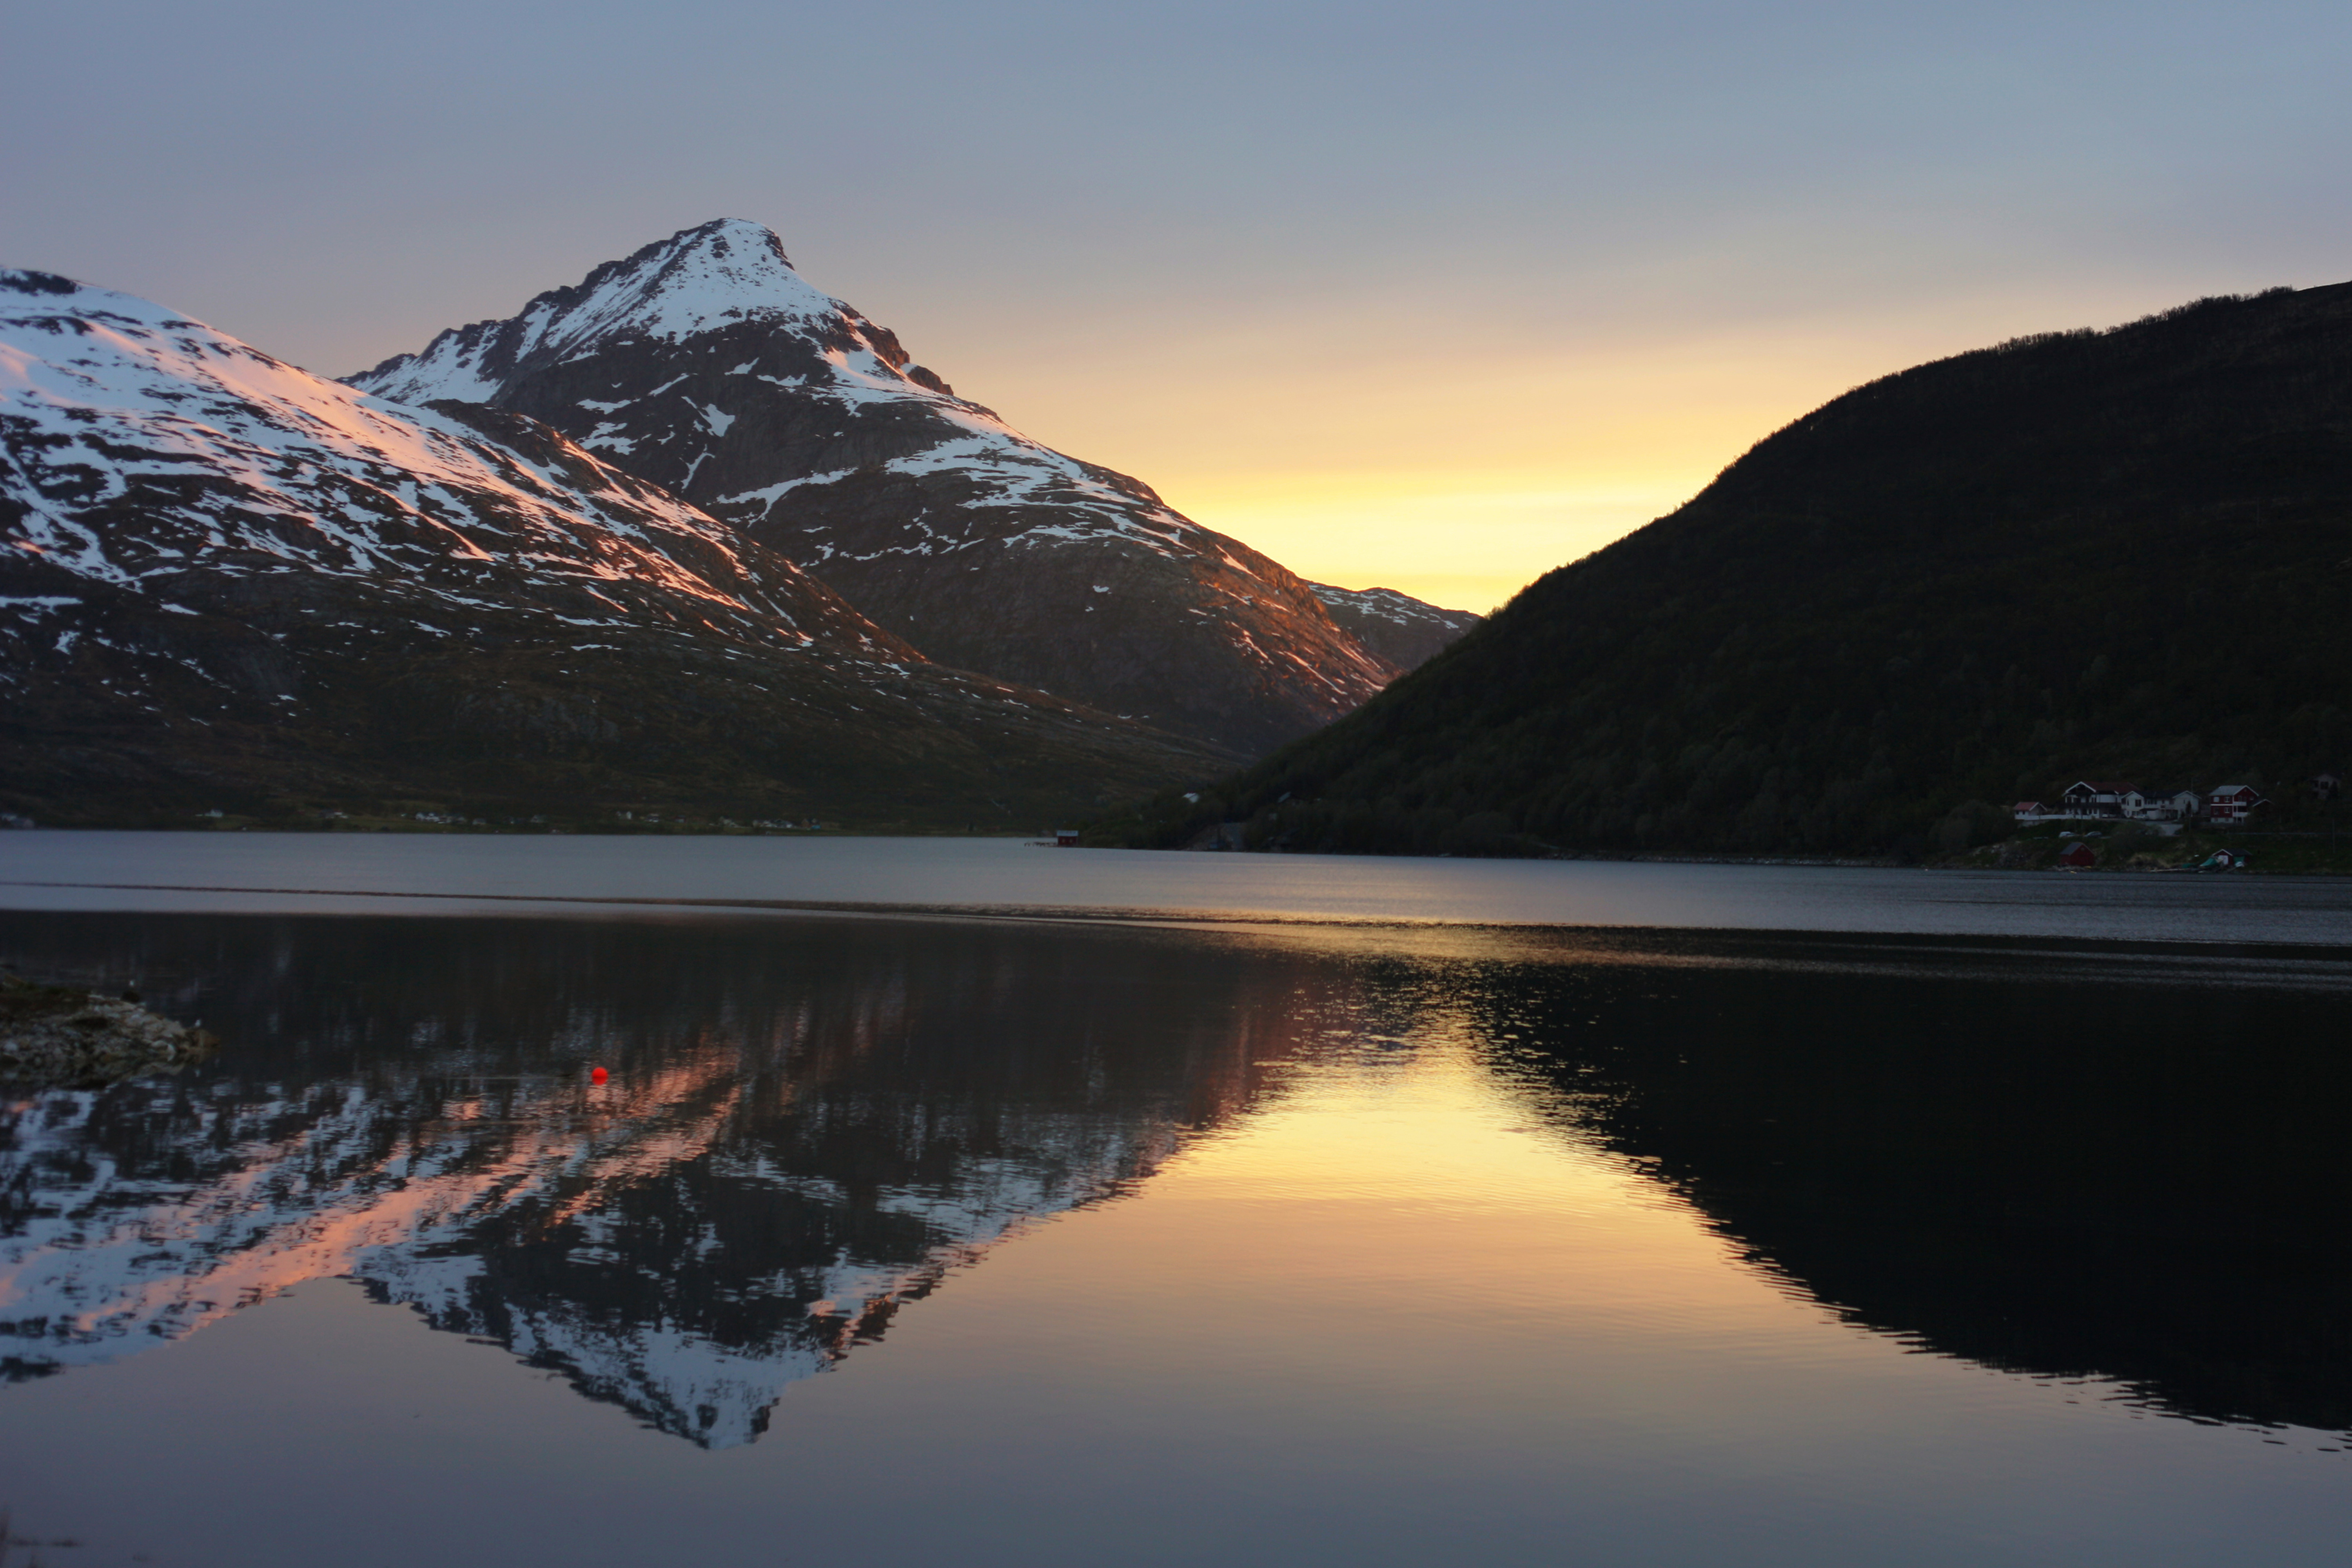 Reflection of Store Blamann - the highest peak from the island of Kvaloya in North Norway